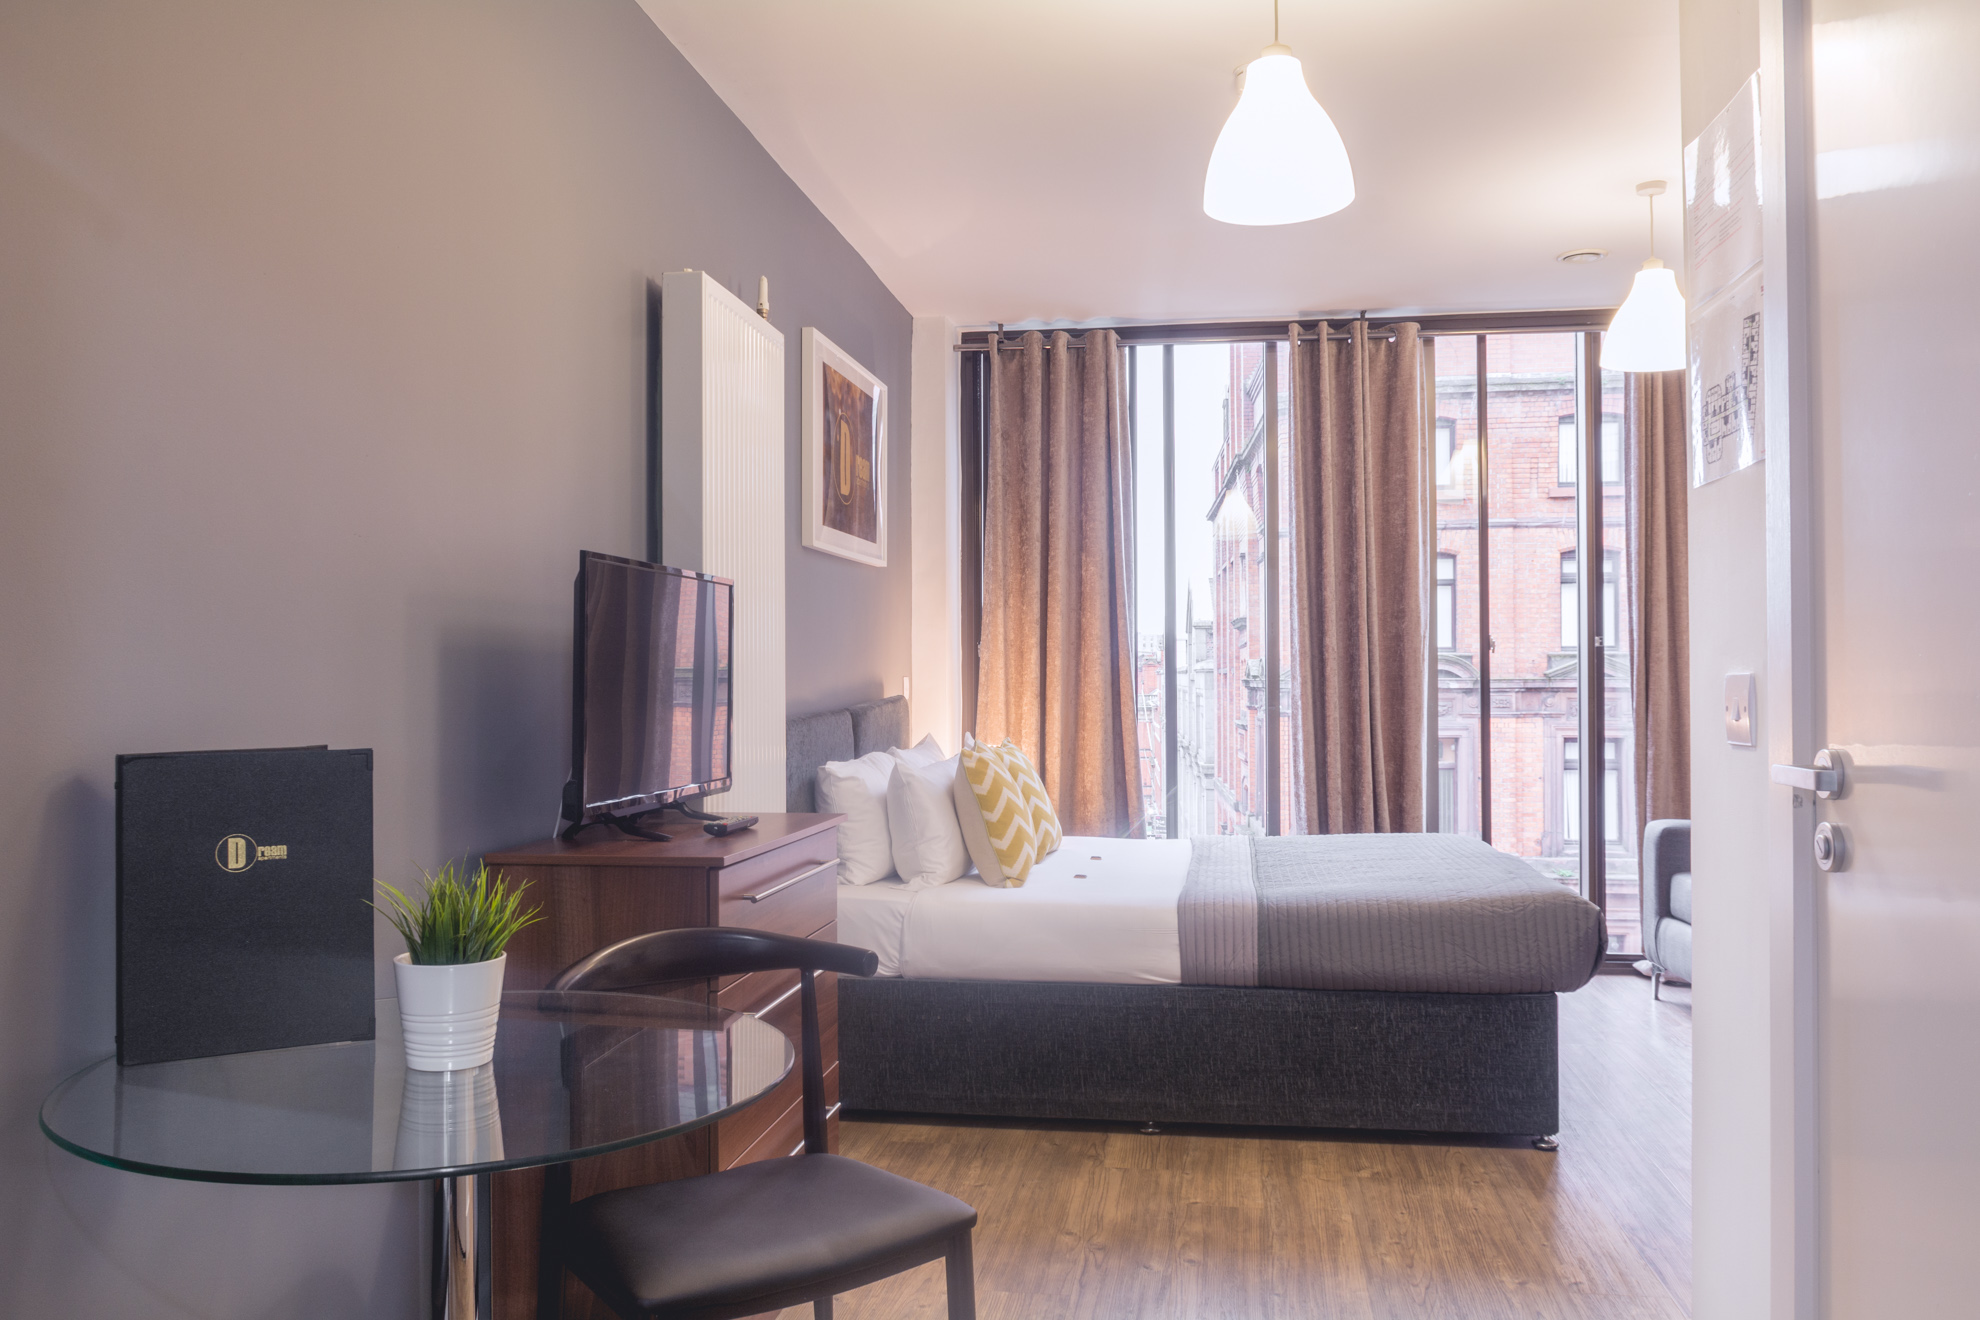 Dream Studio Apartments Image 12